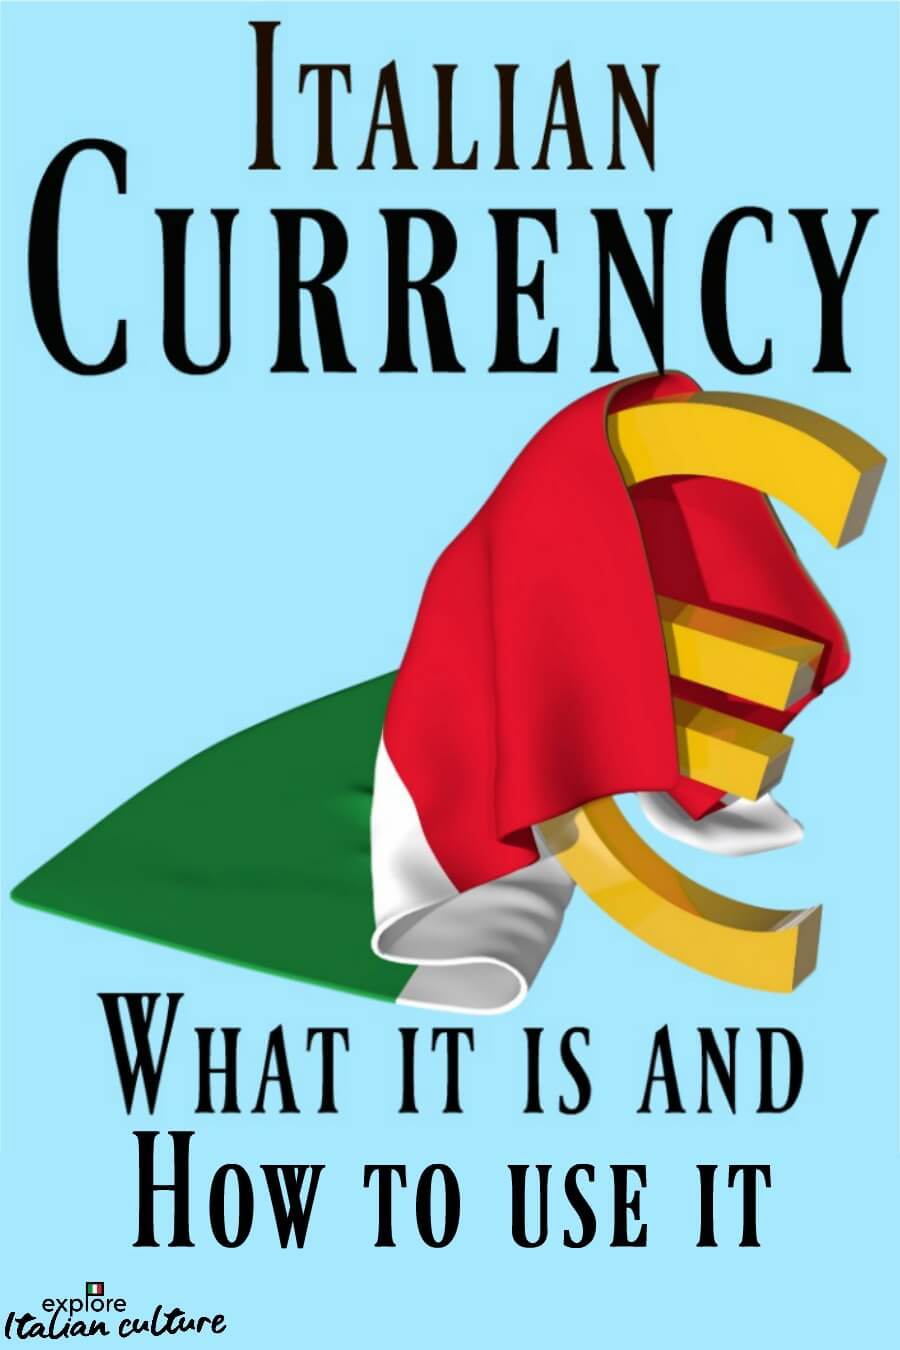 Italian currency: what it is and how to use it.